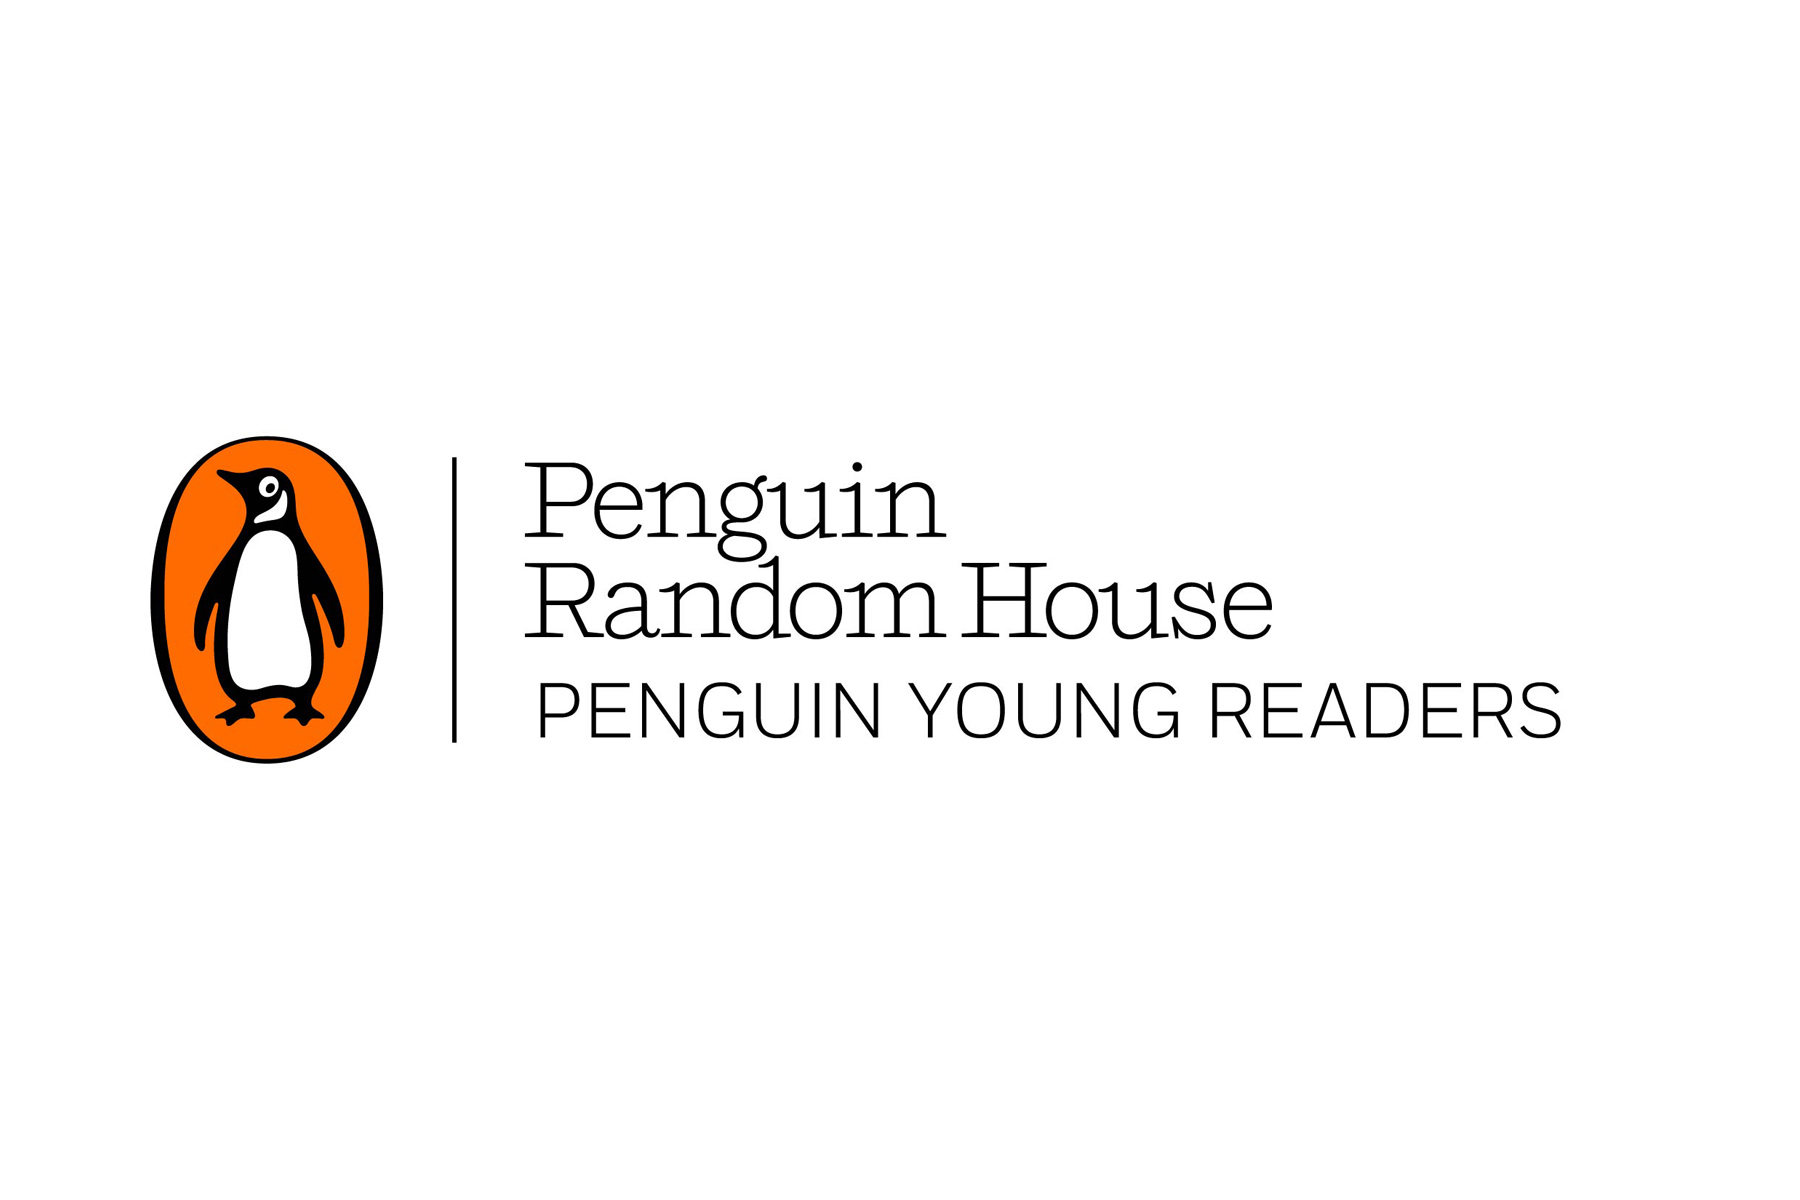 Penguin Young Readers Image